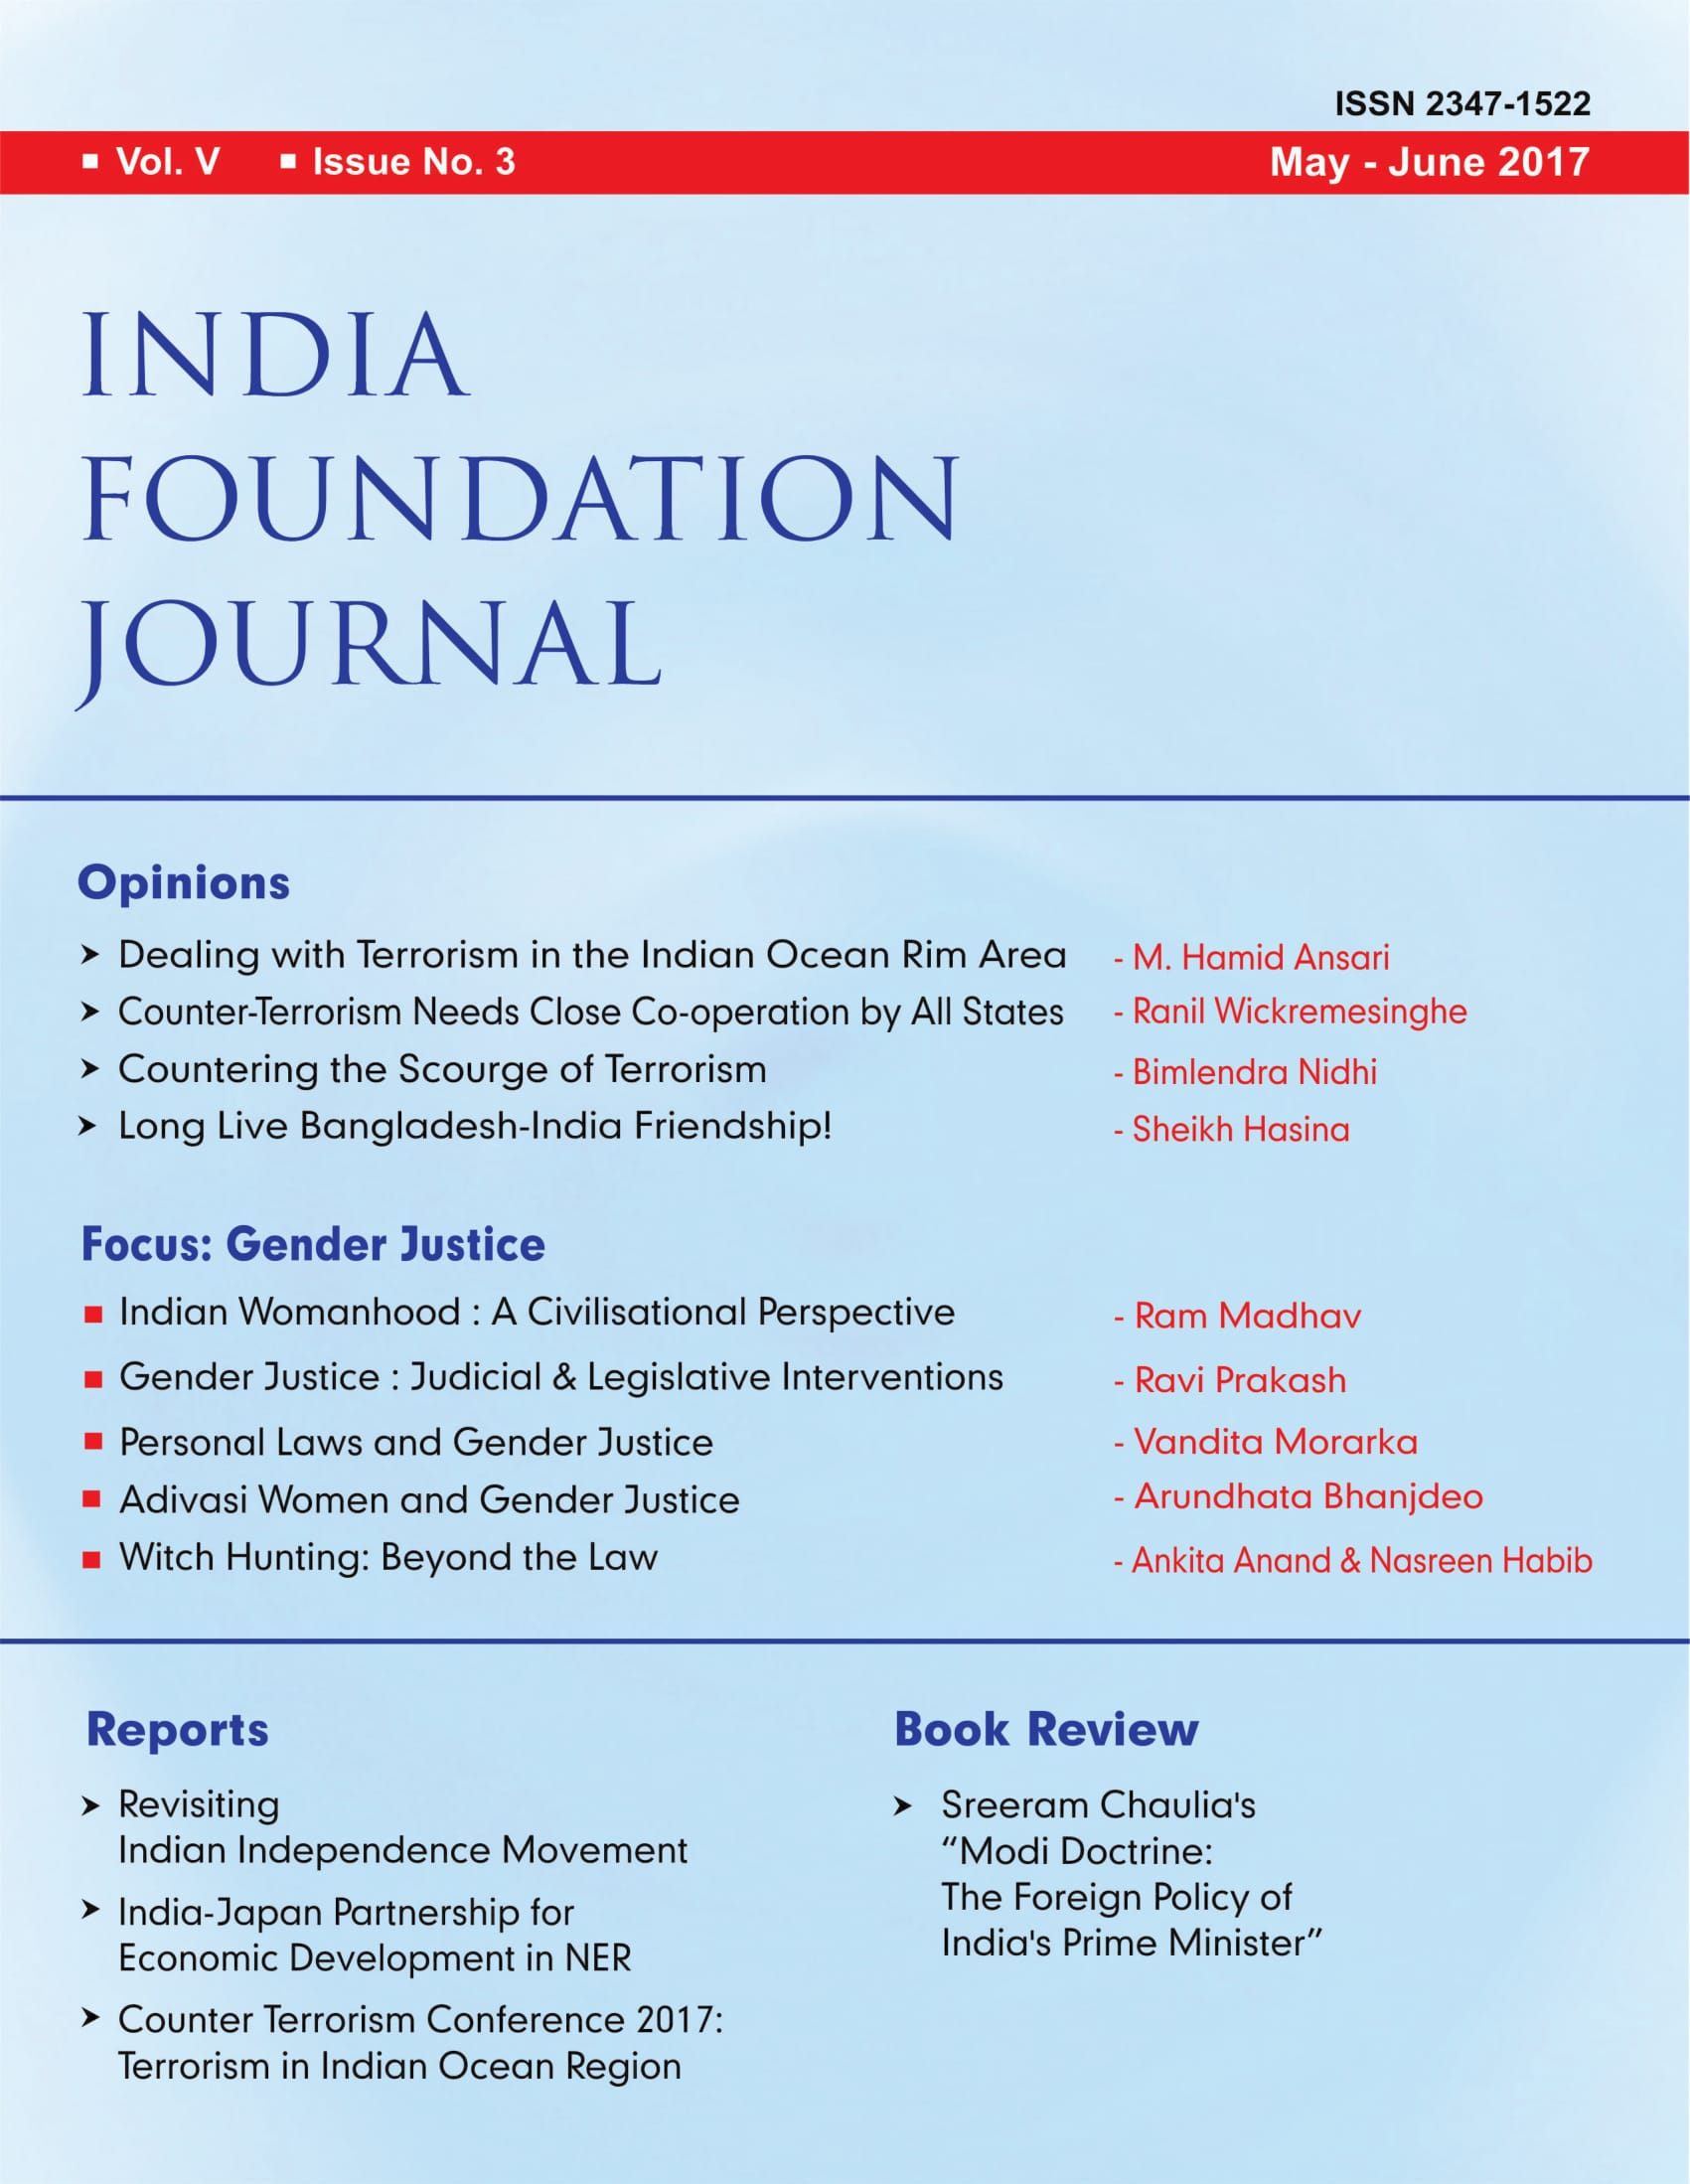 India Foundation Journal May June 2017